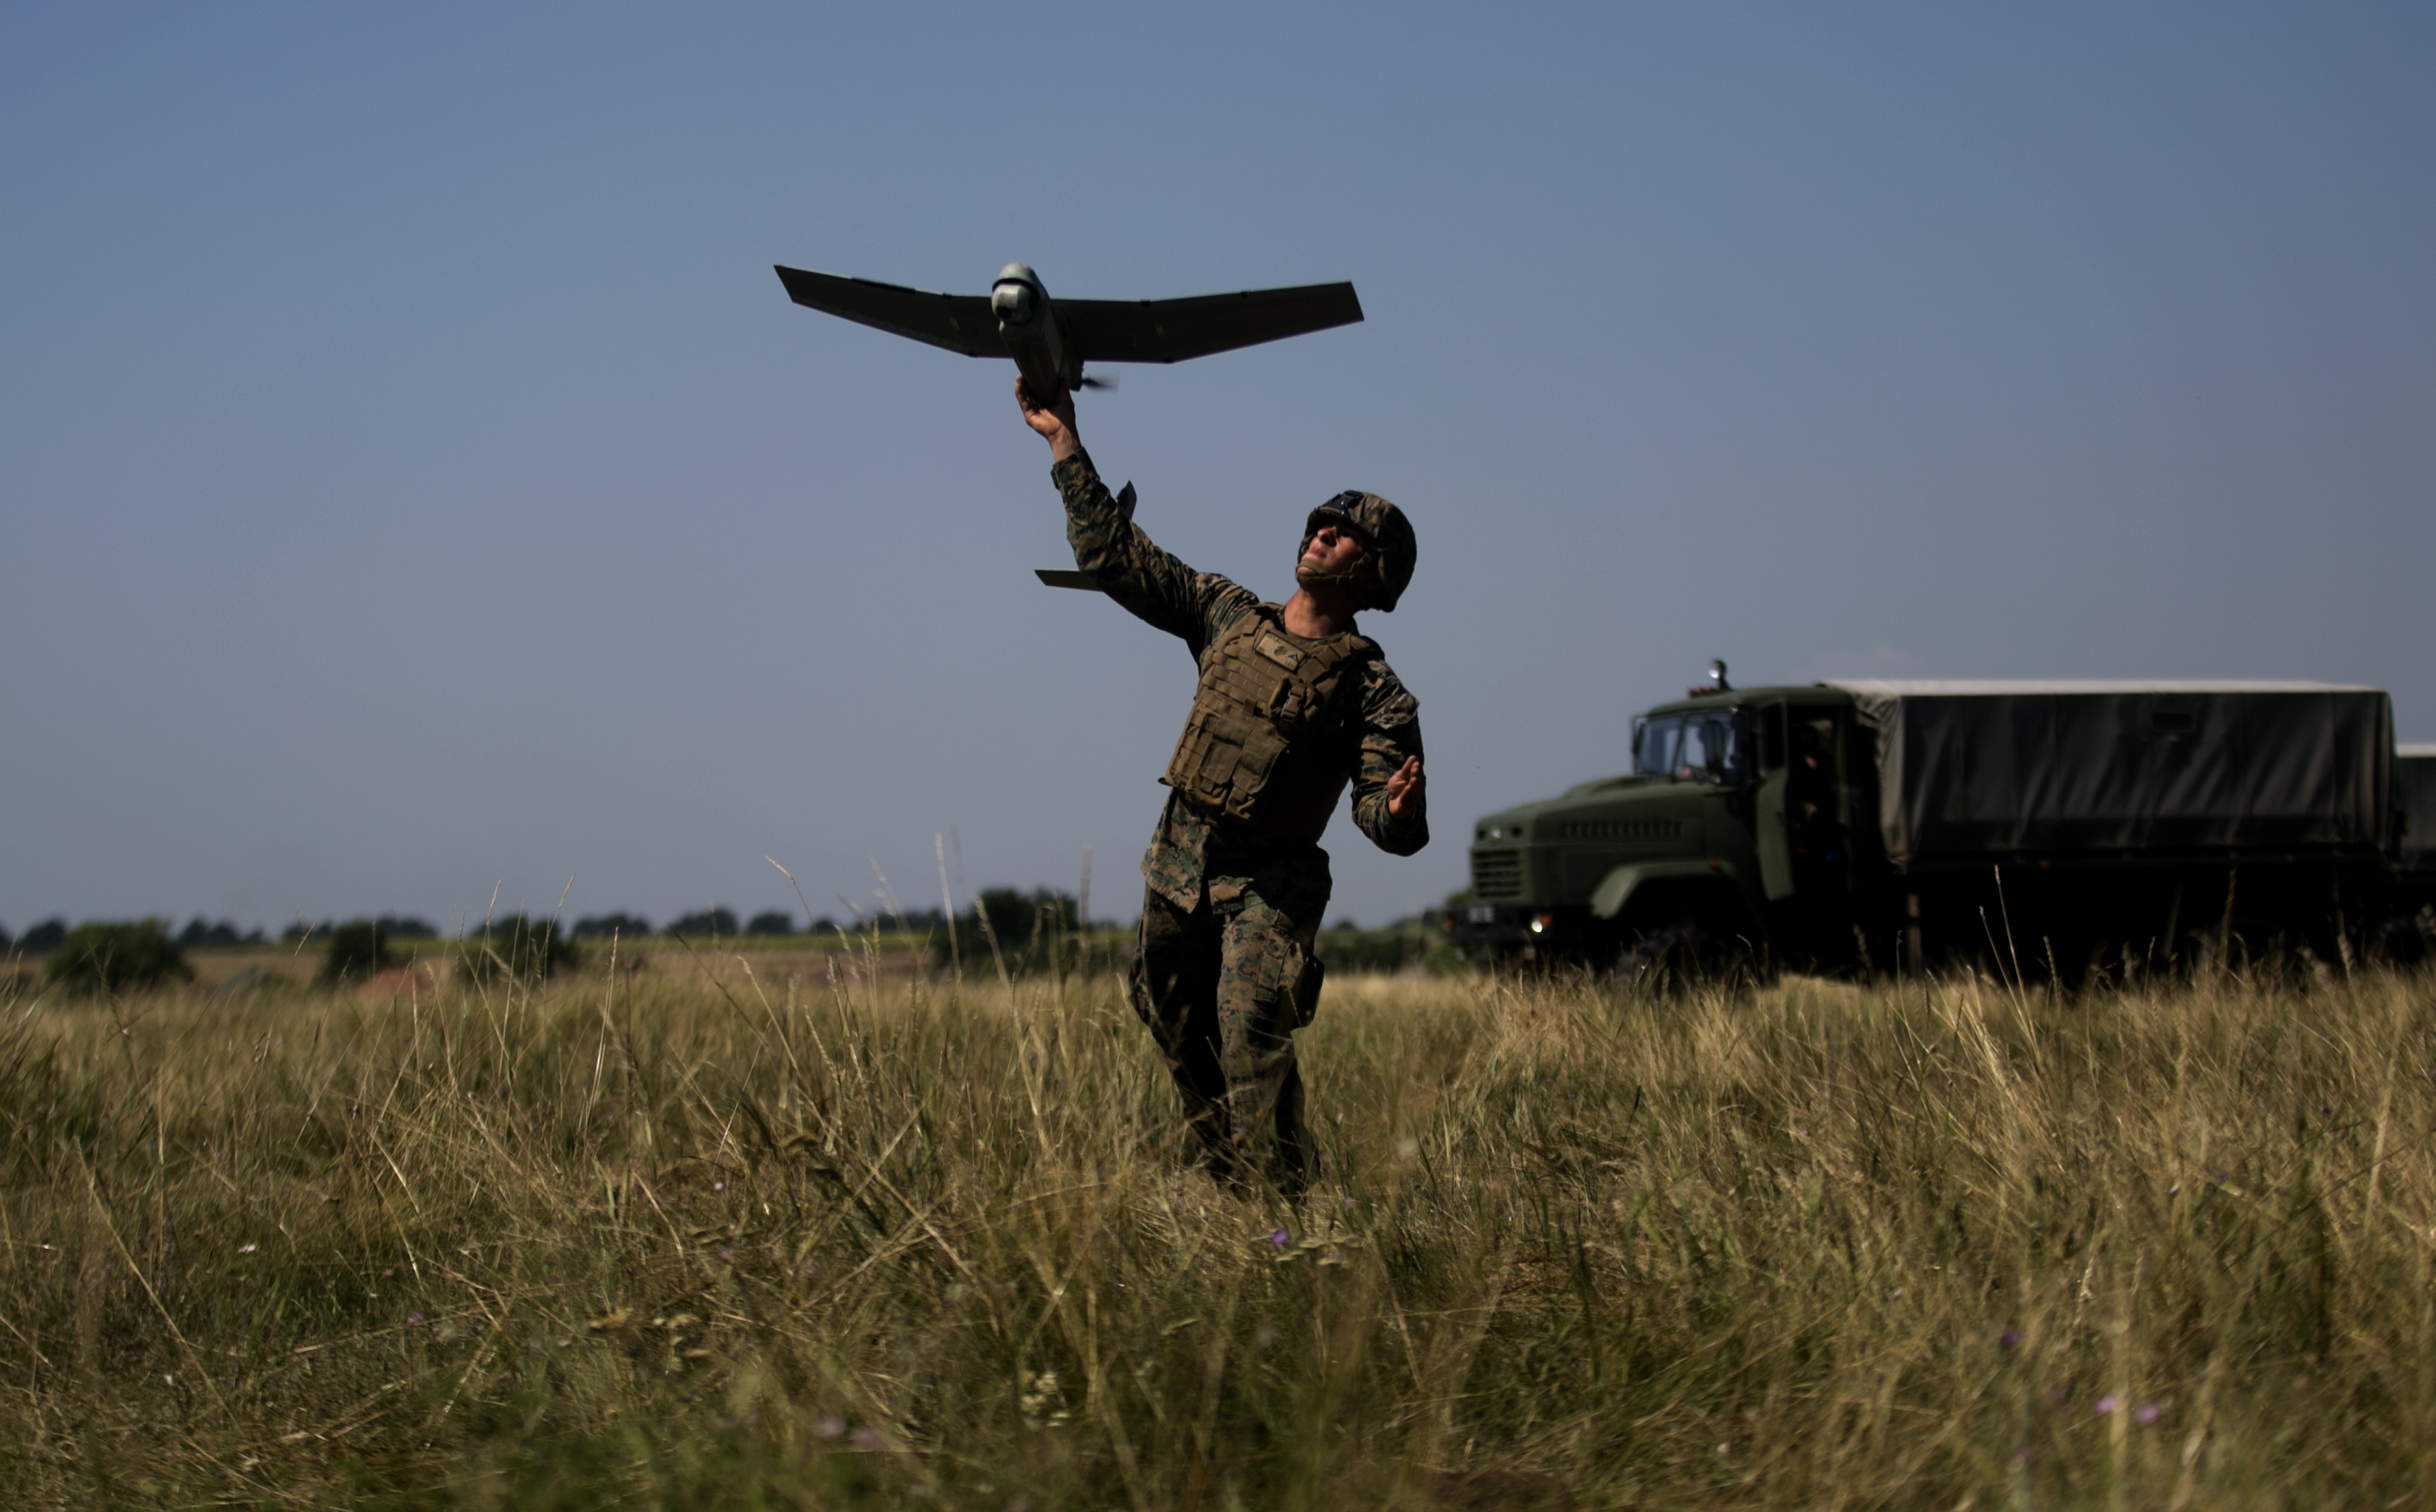 A U.S. Marine with Black Sea Rotational Force 17.1 launches an unmanned aerial vehicle during exercise  Sea Breeze 2017 in Nikolaev. Ukraine, July 19. Sea Breeze is a U.S. and Ukraine co-hosted multinational maritime exercise held in the Black Sea and is designed to enhance interoperability of participating nations and strengthen maritime security within the region. (U.S. Marine Corps photo by Cpl. Sean J. Berry/Released)